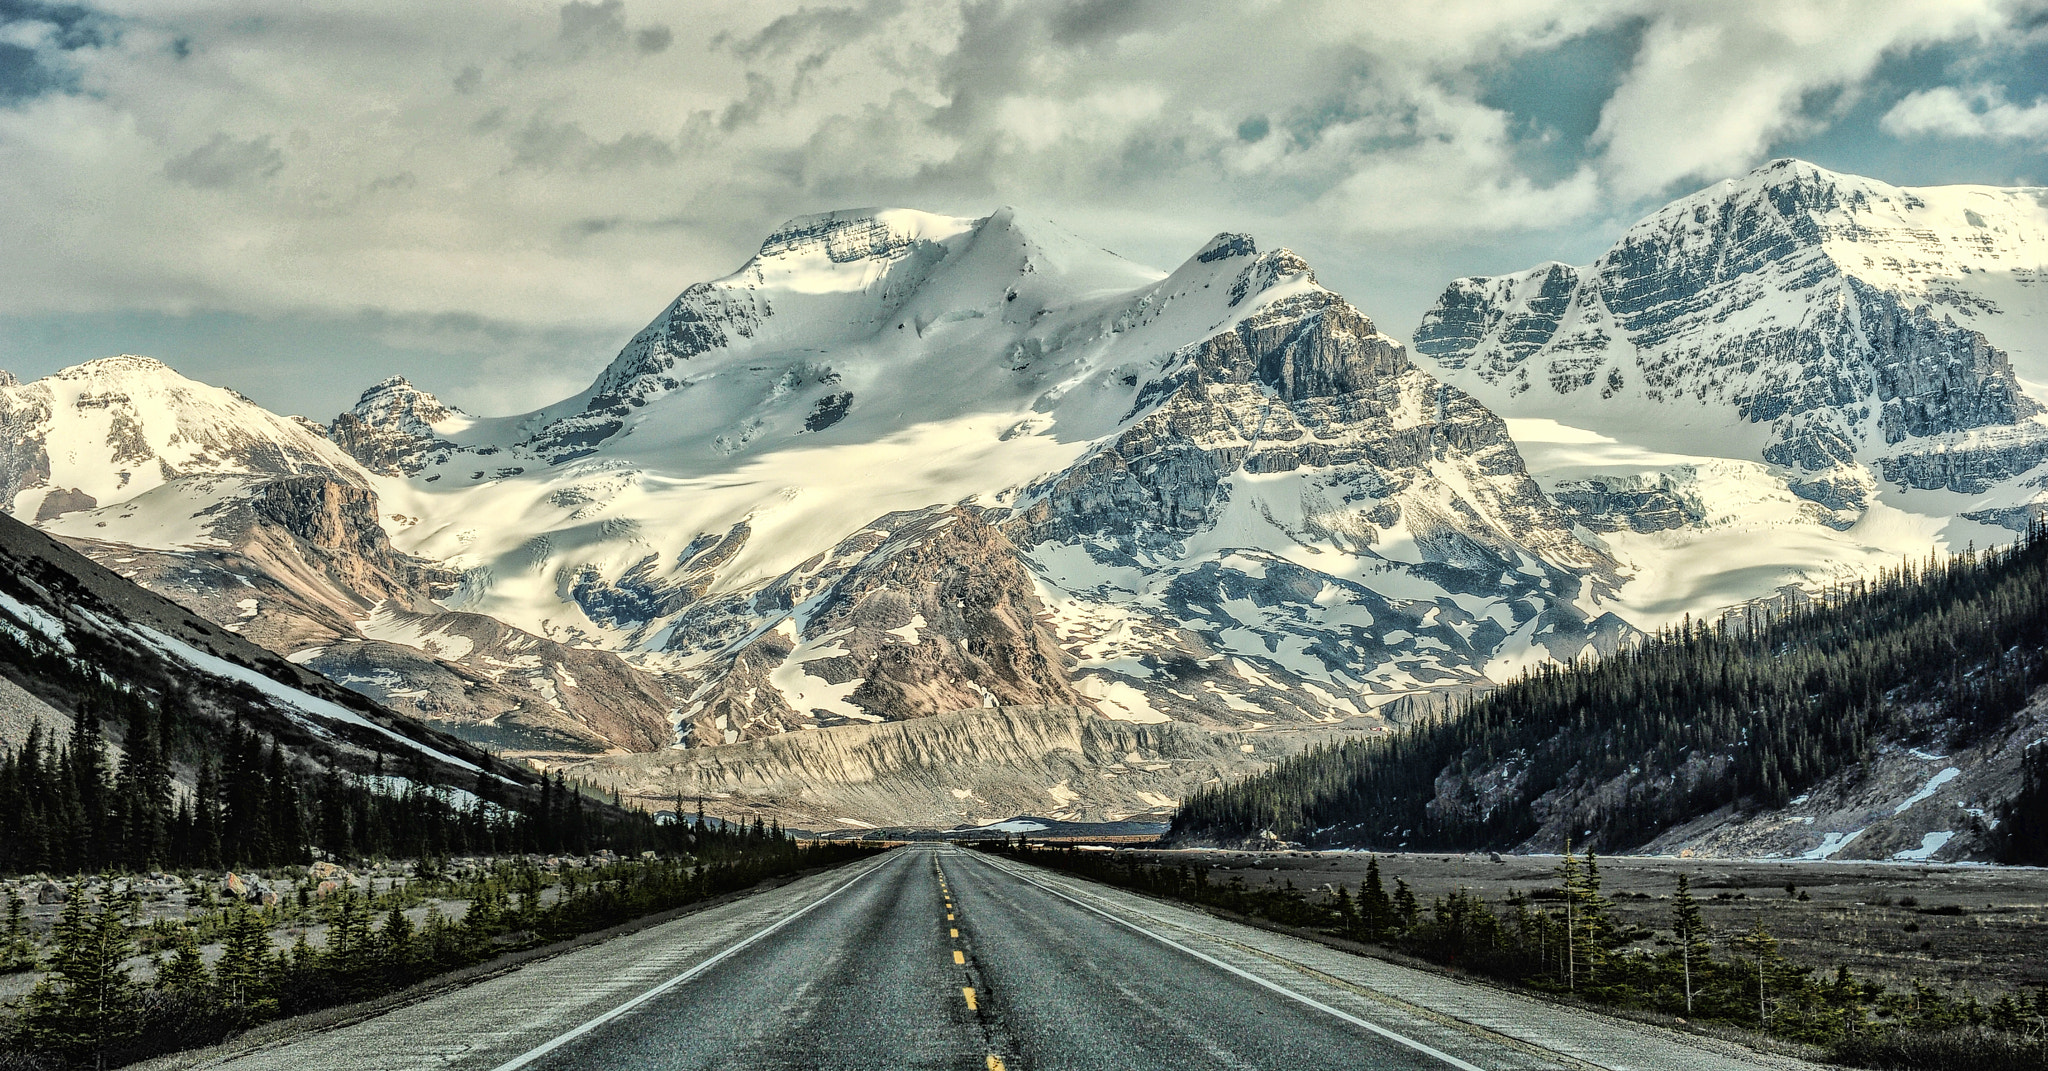 Photograph Road to the Rockies by Jeff Clow on 500px